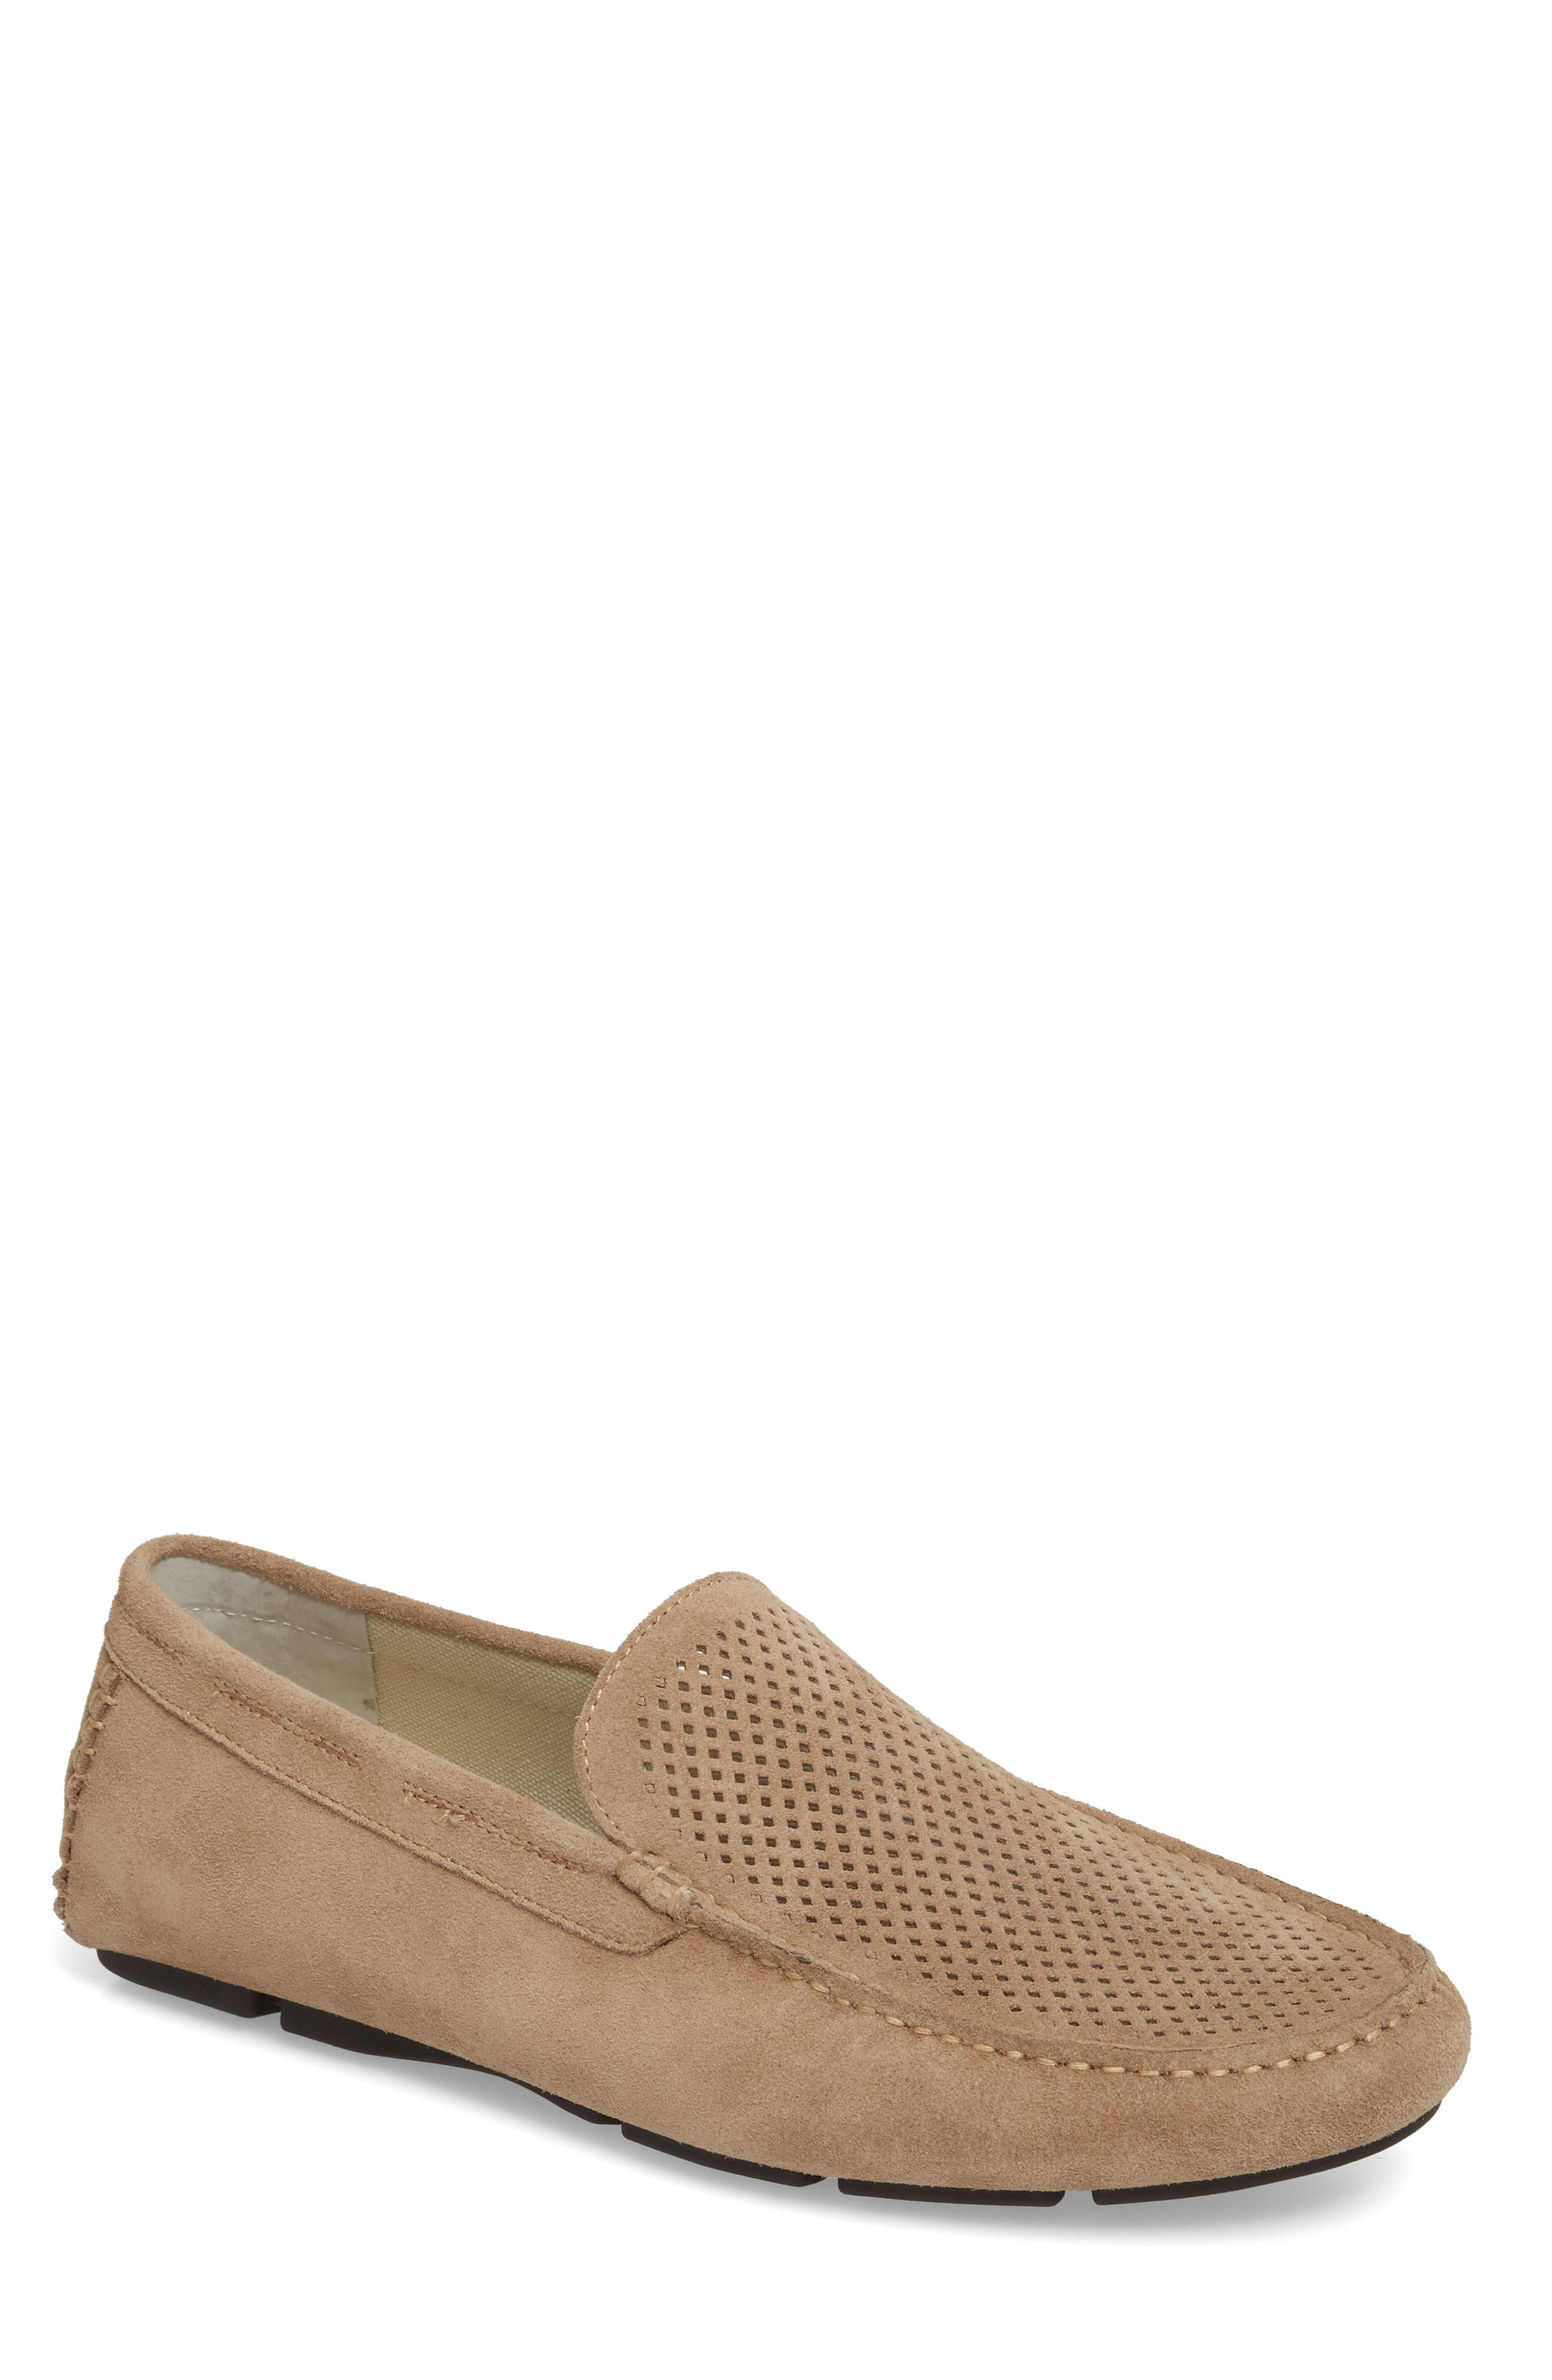 Scottsdale Perforated Driving Moccasin,                         Main,                         color, Tan Suede